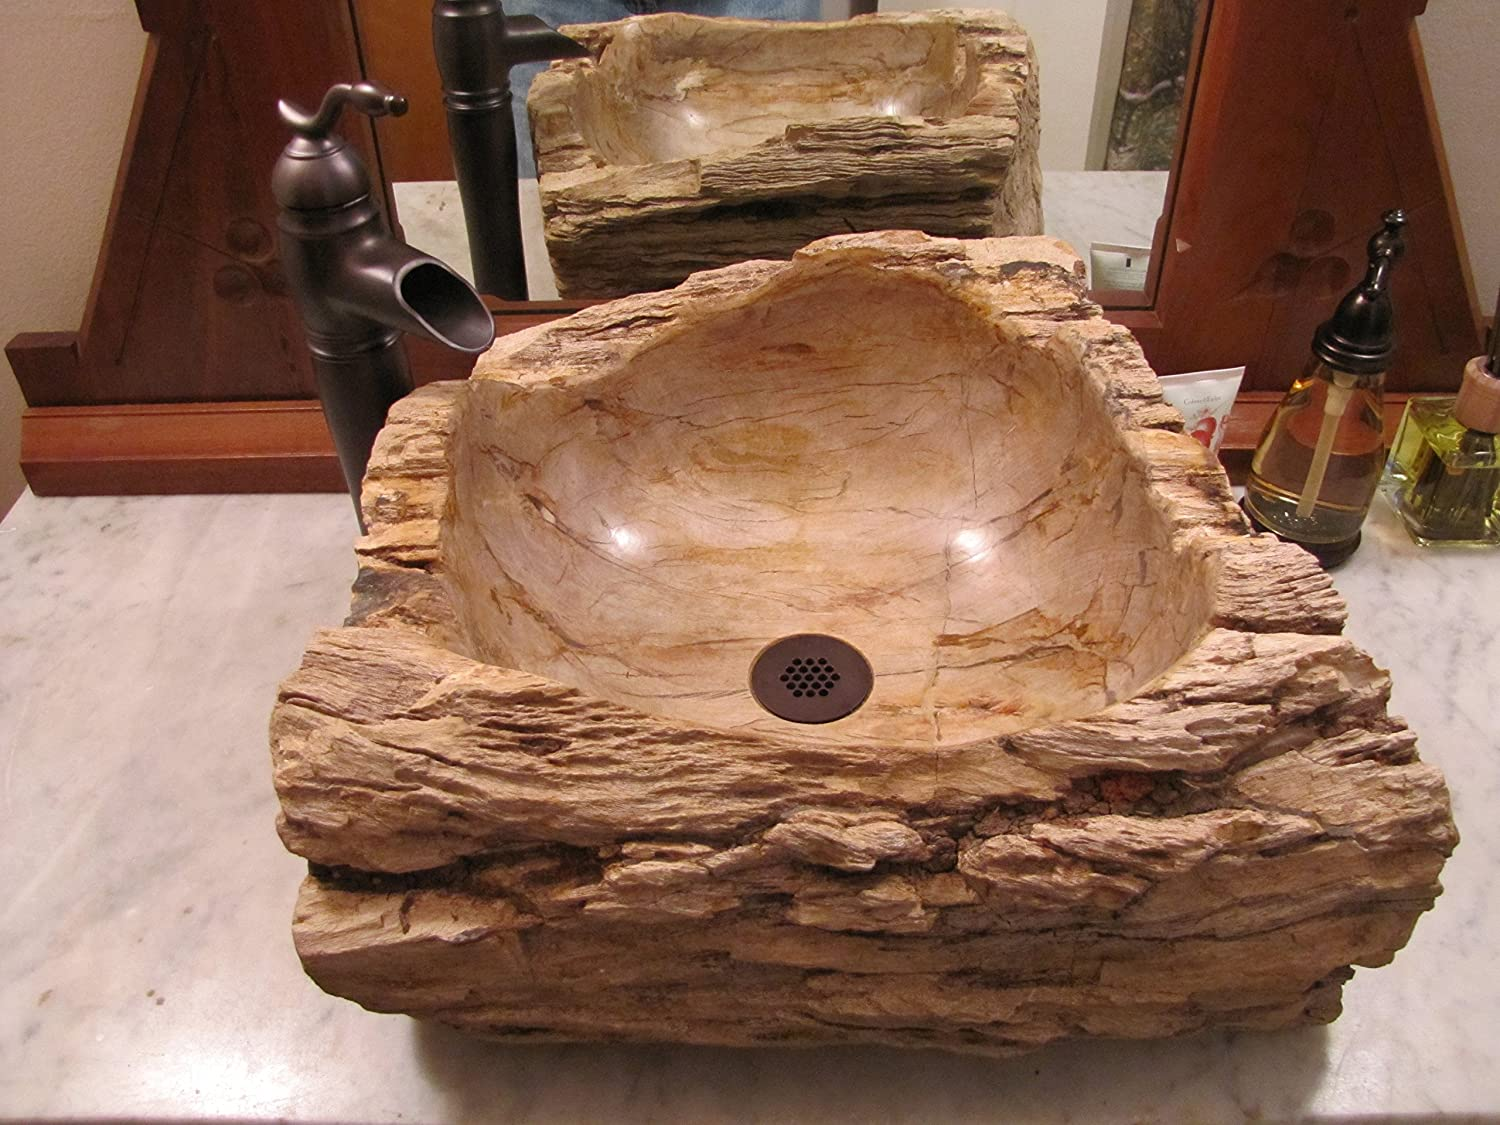 stone sinks for bathroom bathroom sinks stone crafts home inside ideas stone  bathroom sinks for sale .